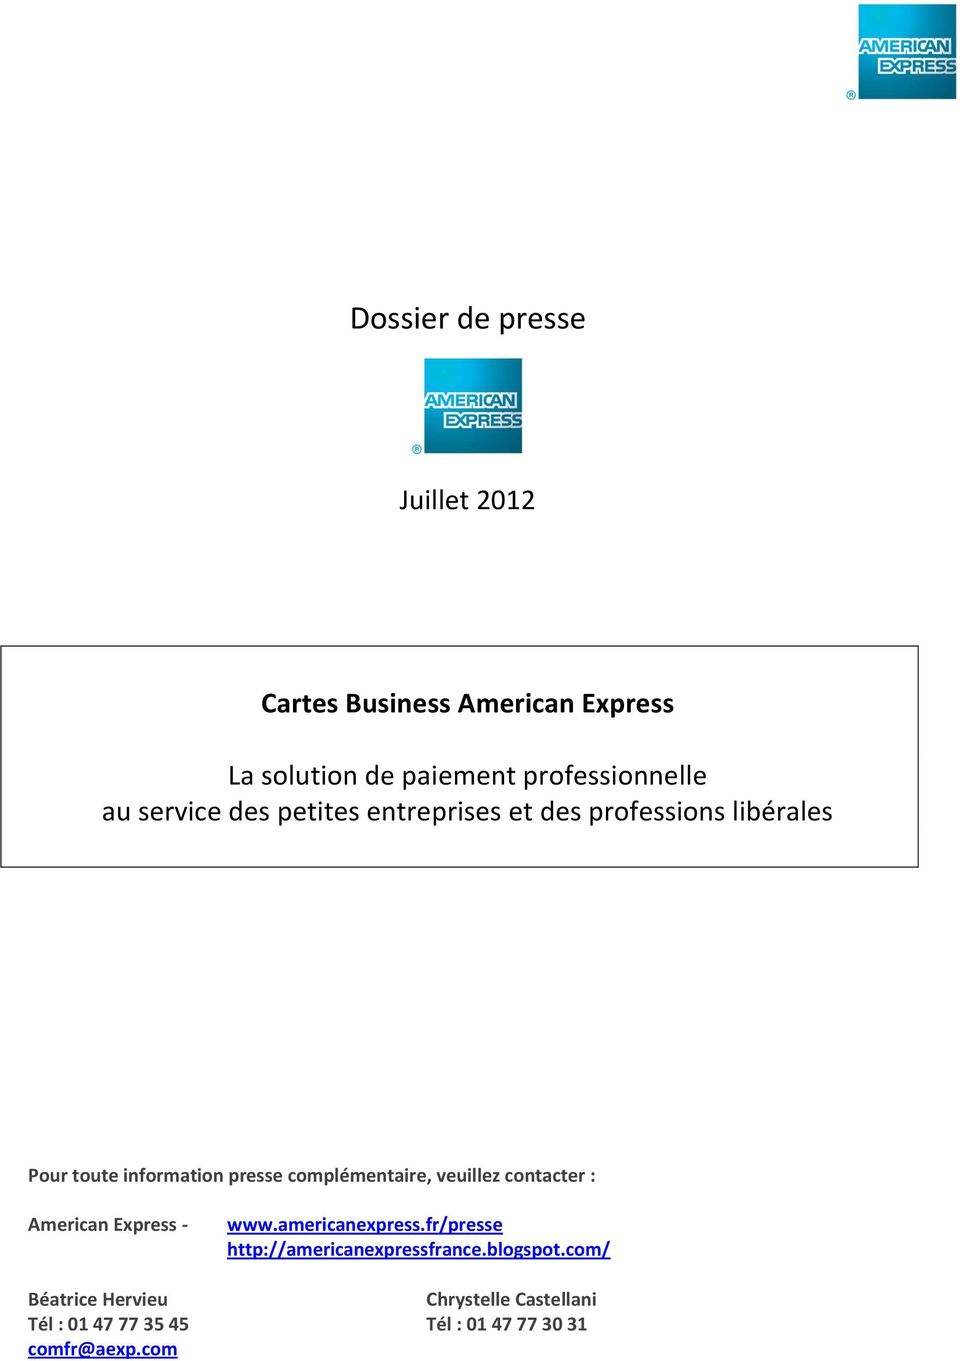 complémentaire, veuillez contacter : American Express - www.americanexpress.